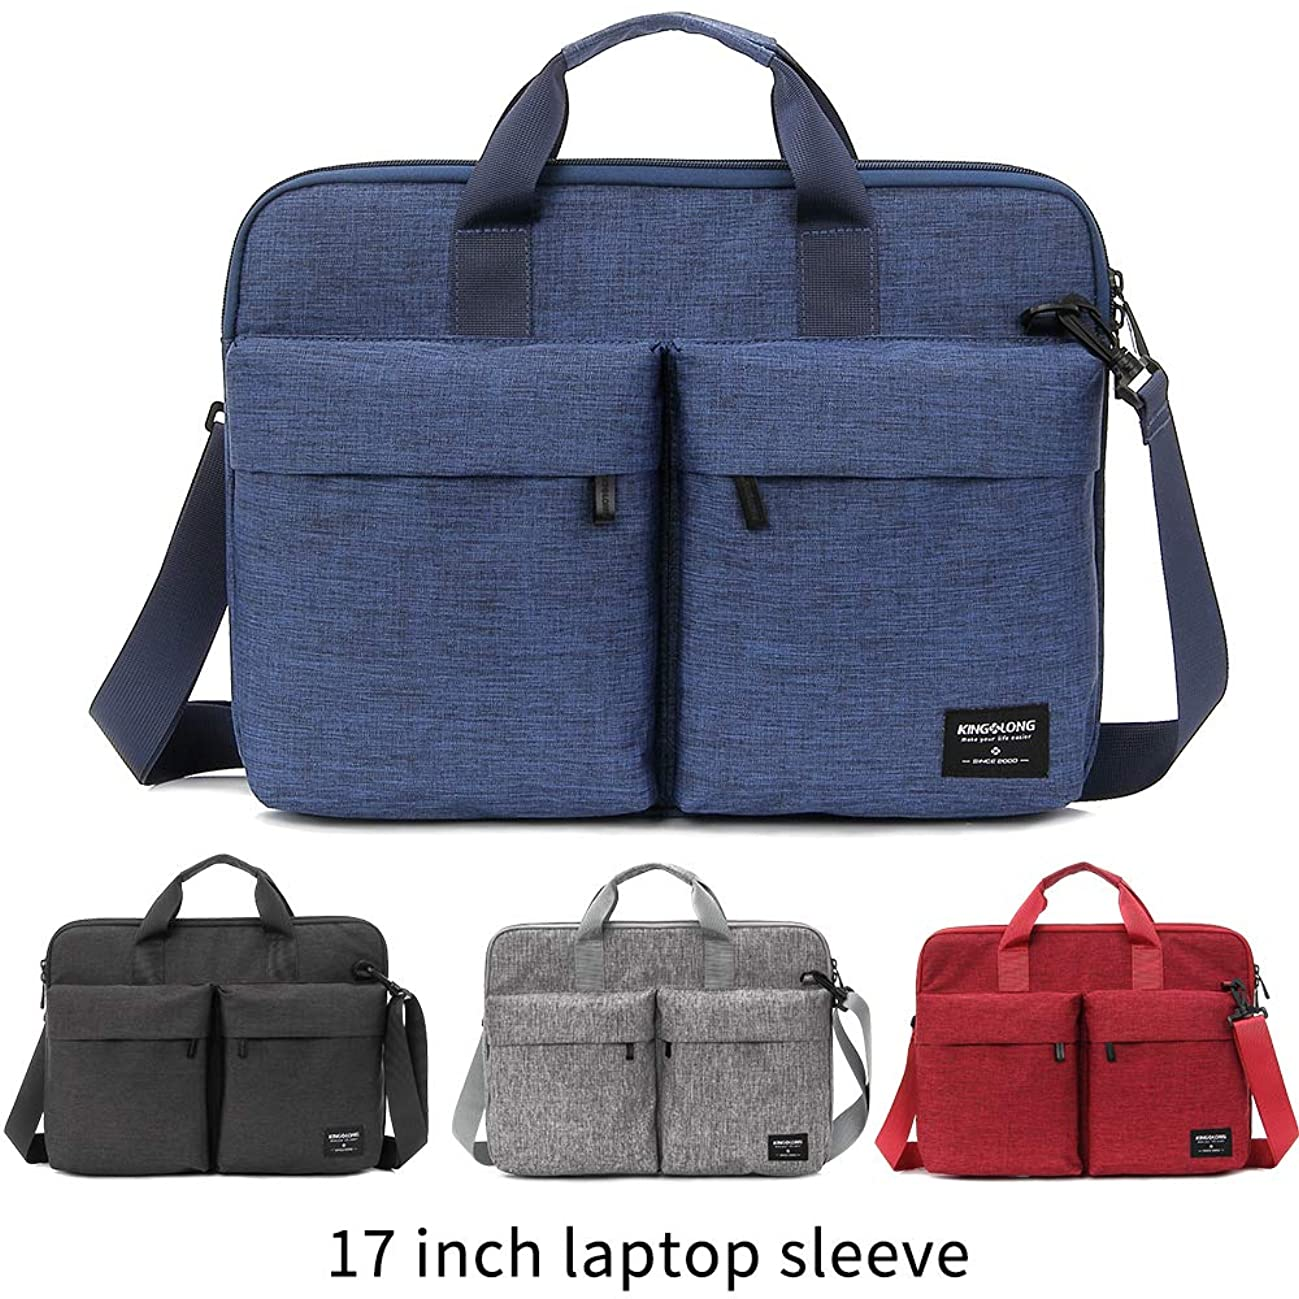 17.3 inch Laptop case Laptop Hand Bag for MacBook Pro/Dell Inspiron/MSI/HP Pavilion/Lenovo/Acer/Samsung Sony ASUS 17-17.3 inch Laptop by KINGLONG (BL)